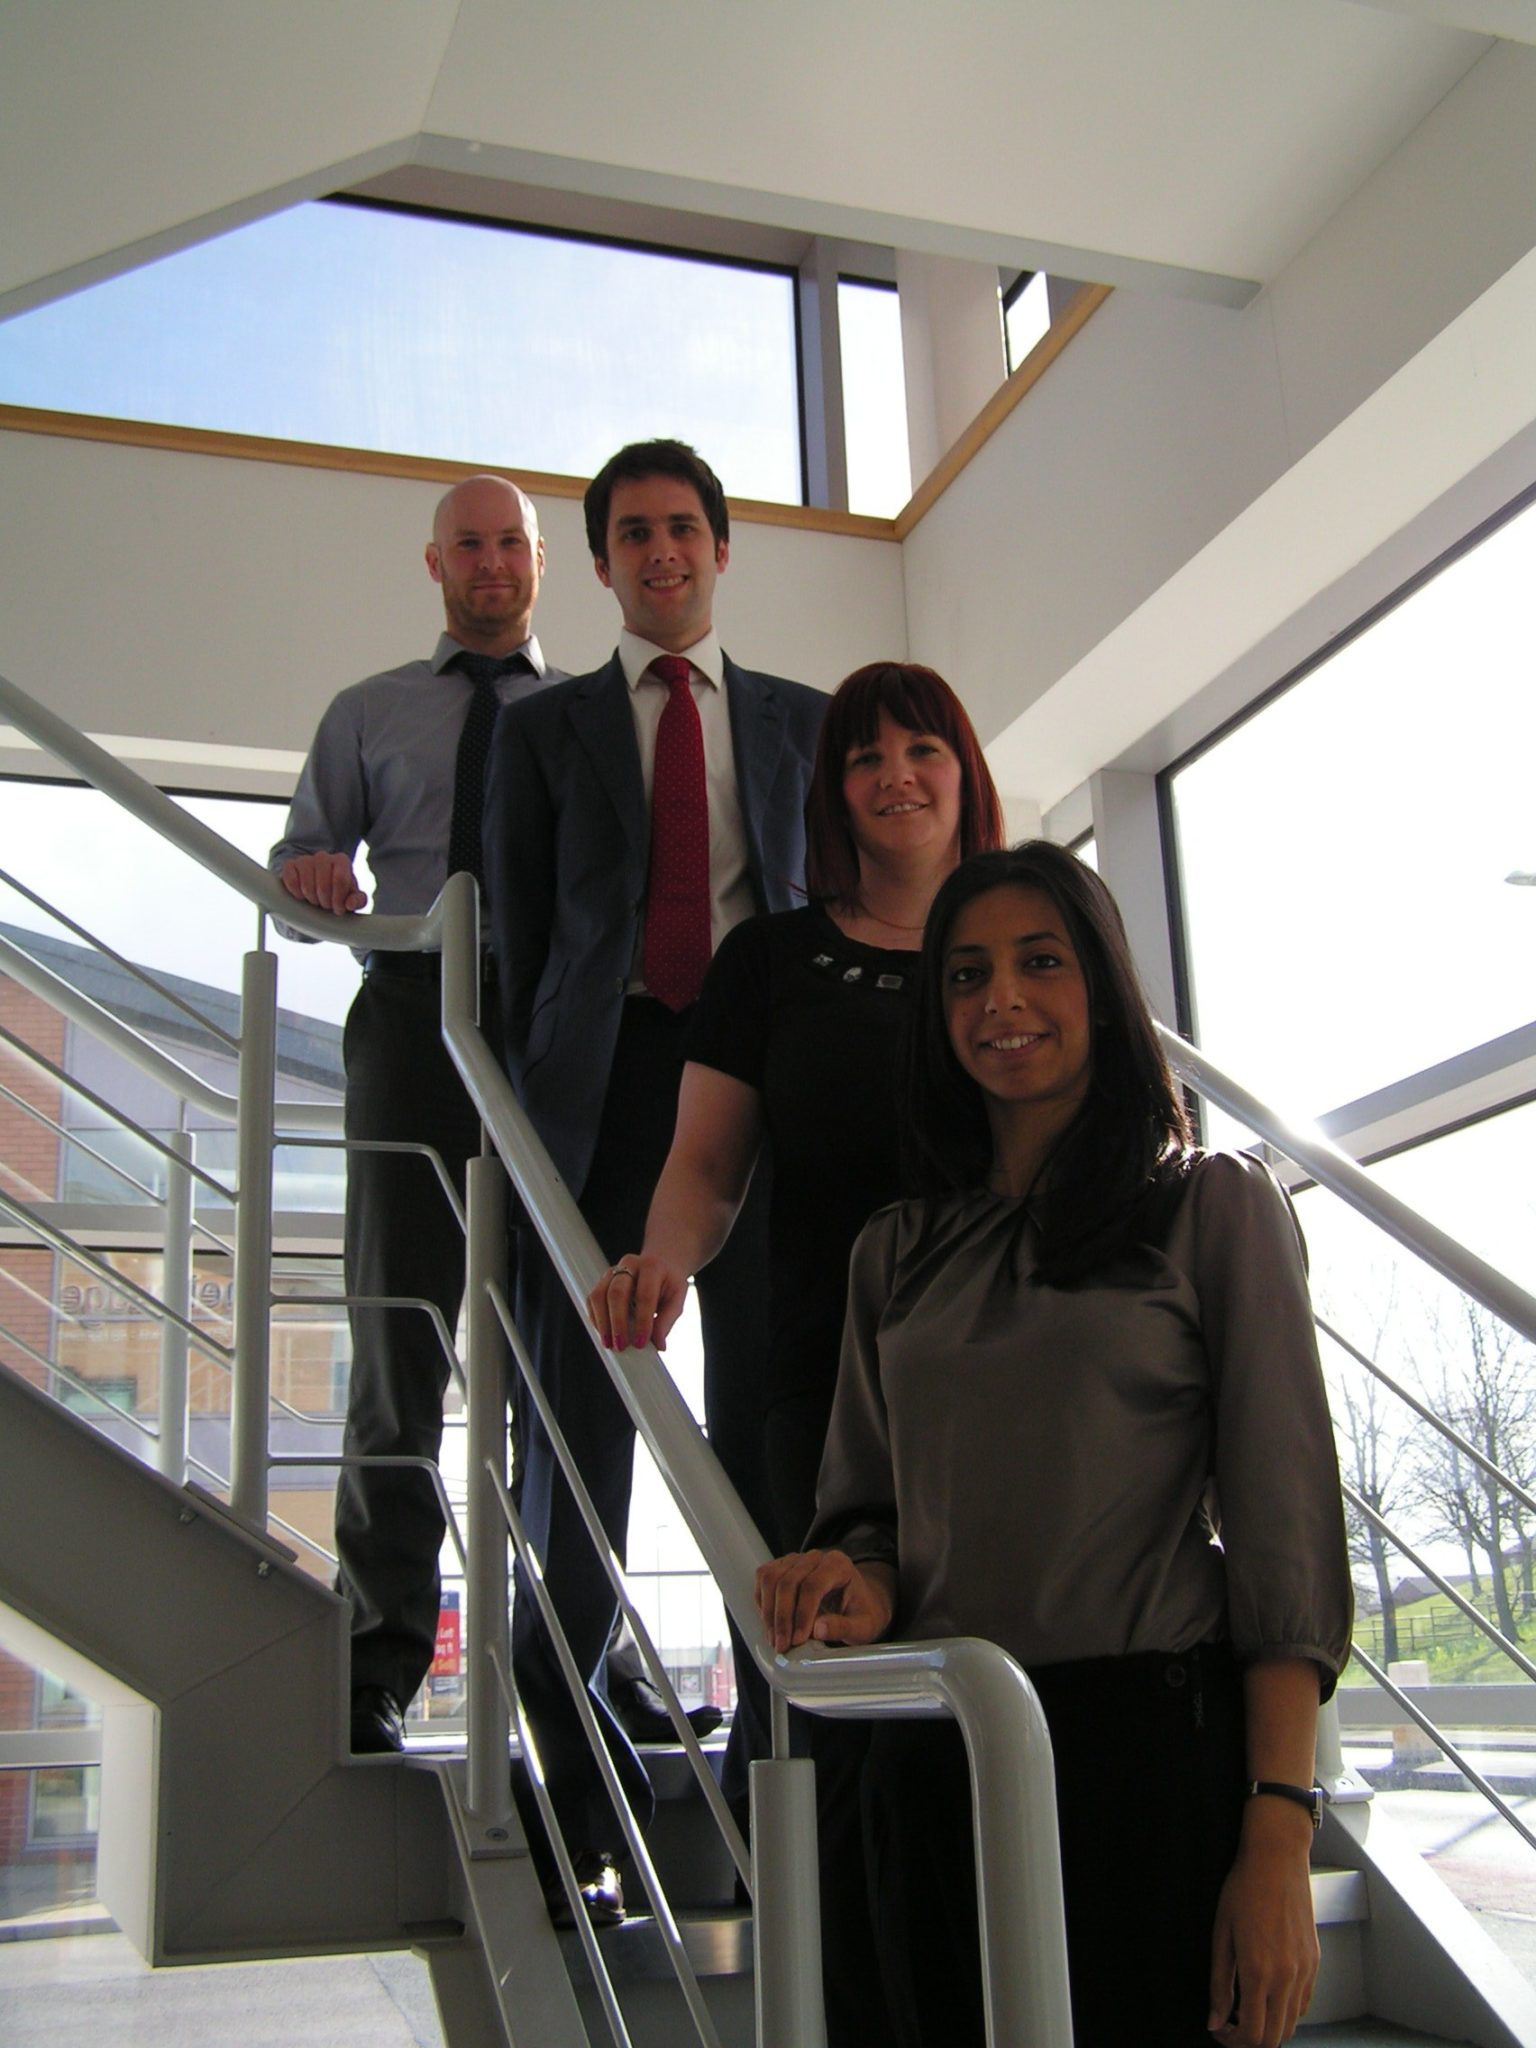 Solicitors recruit 18 new staff in Leeds and Hull to meet client demand